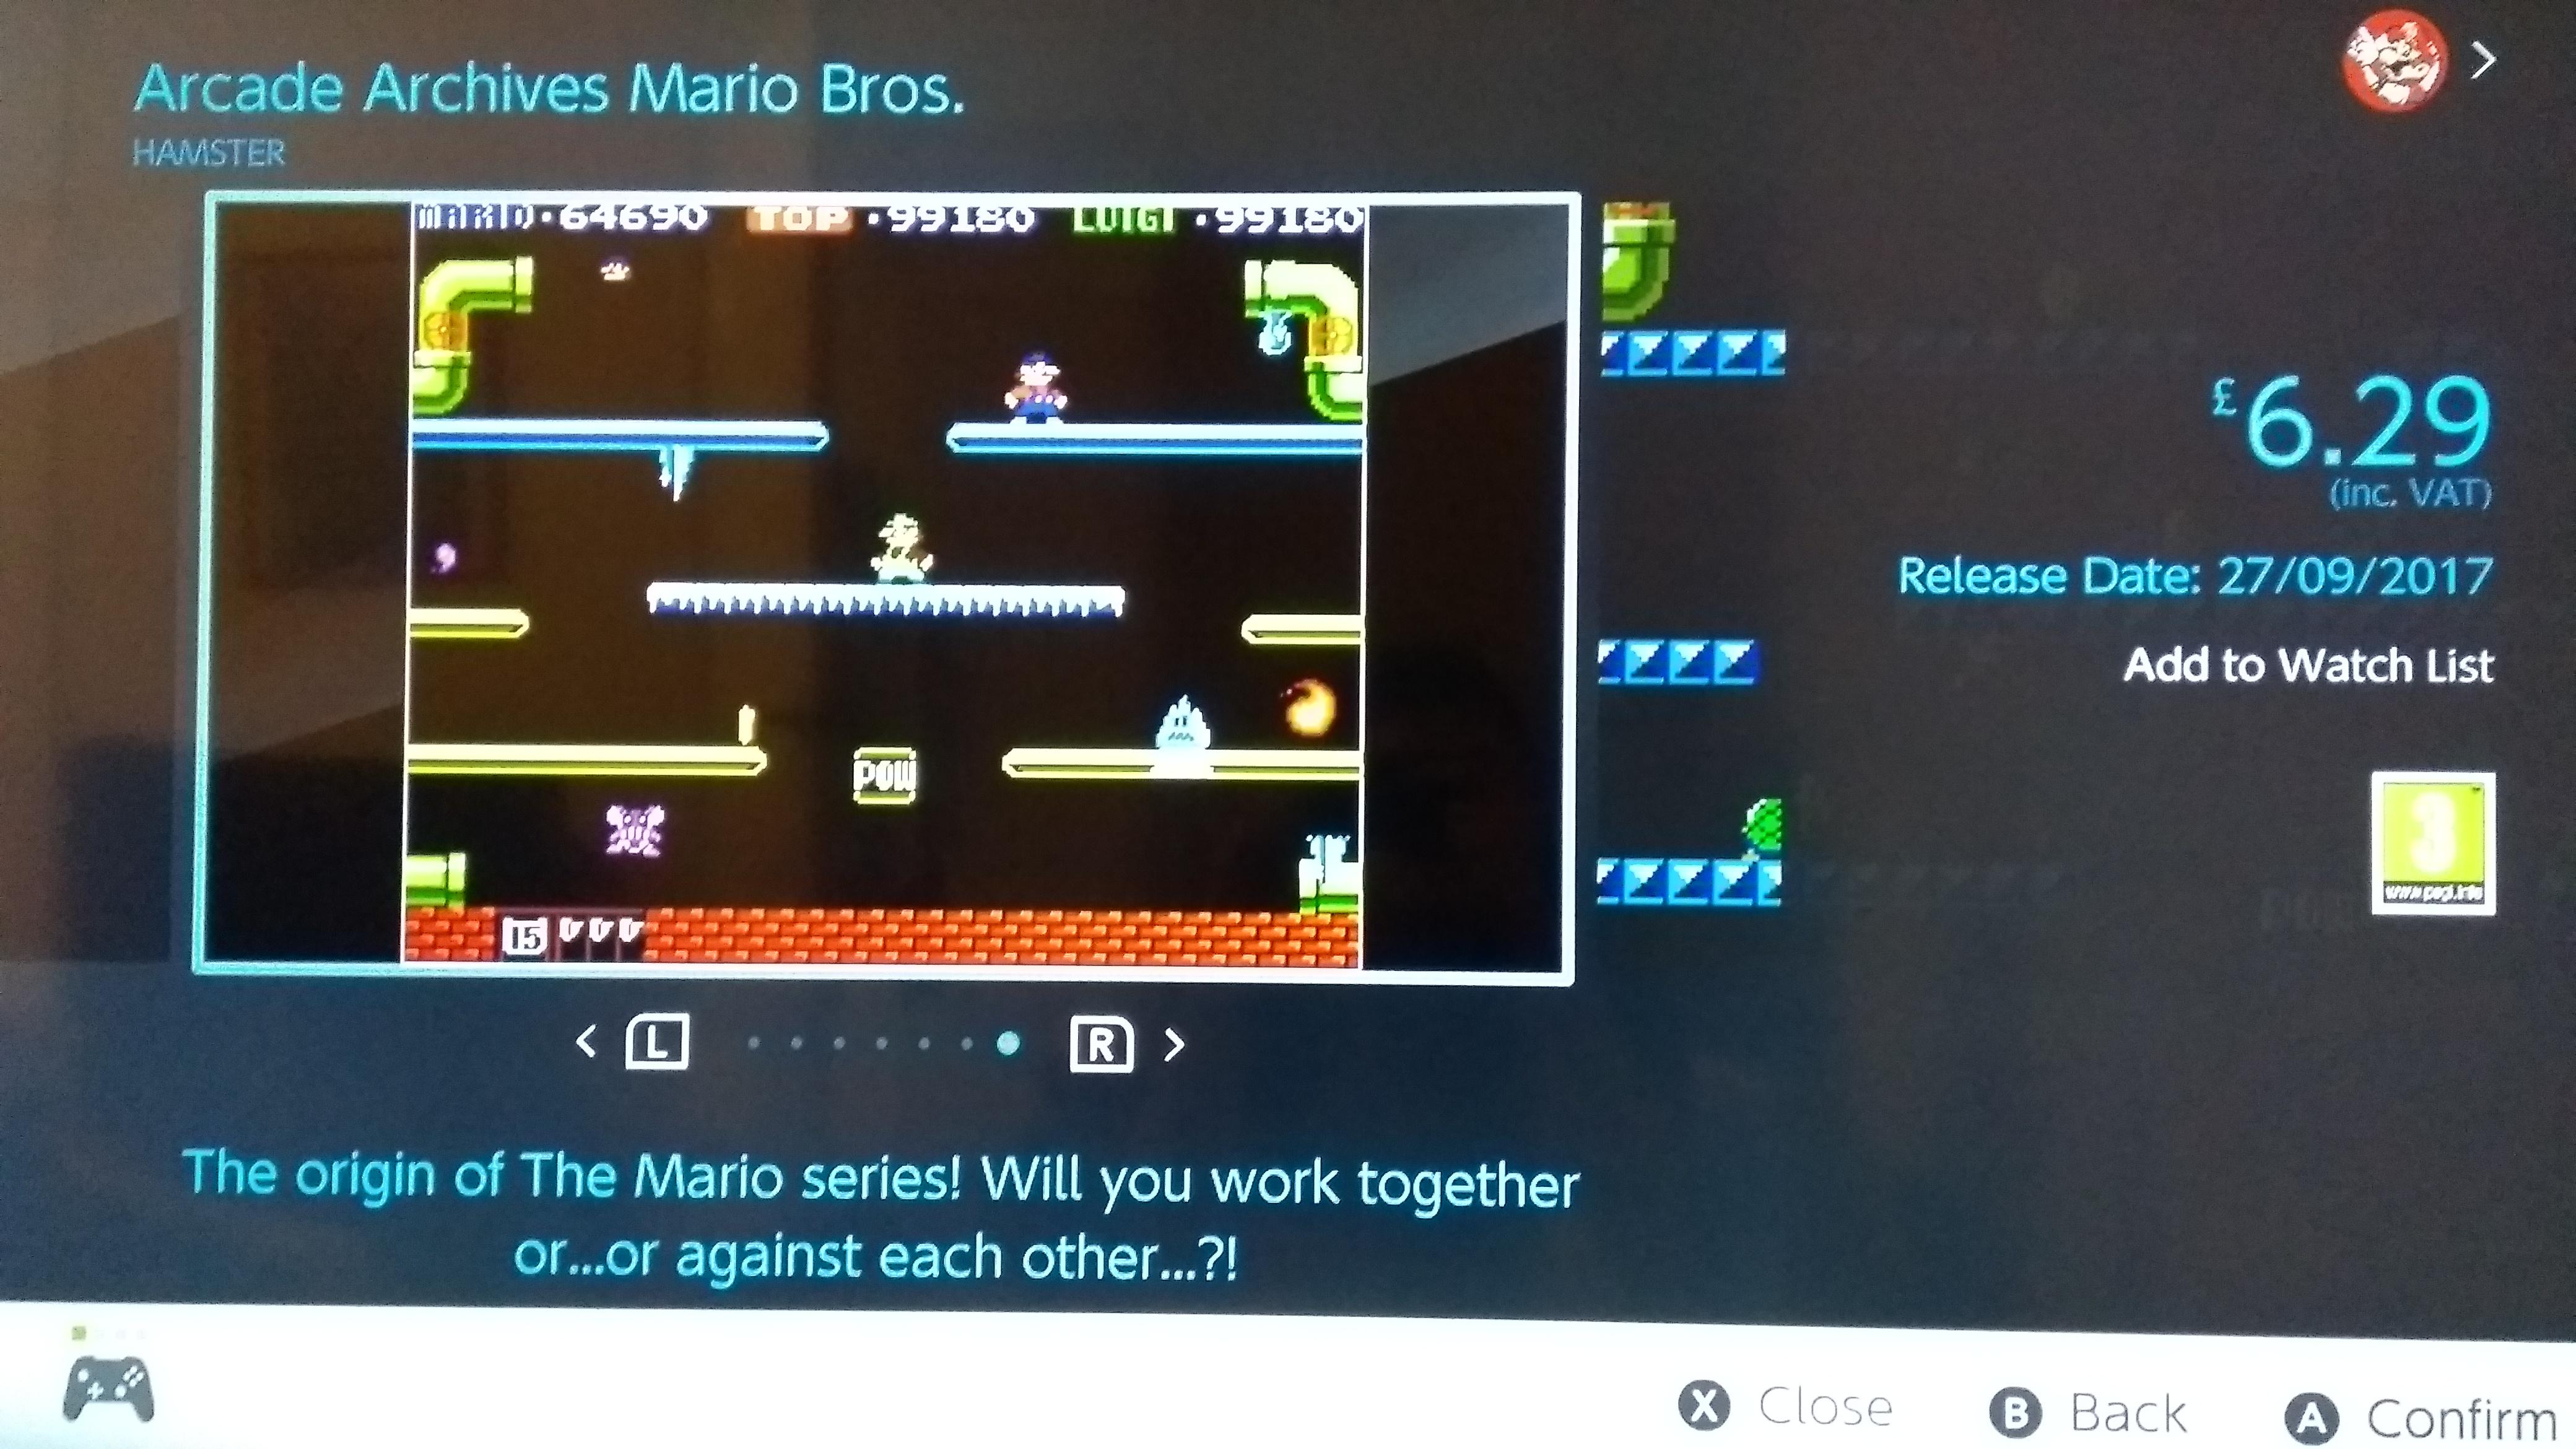 Arcade Archives Mario Bros Listed For 6 29 In The Uk Switch